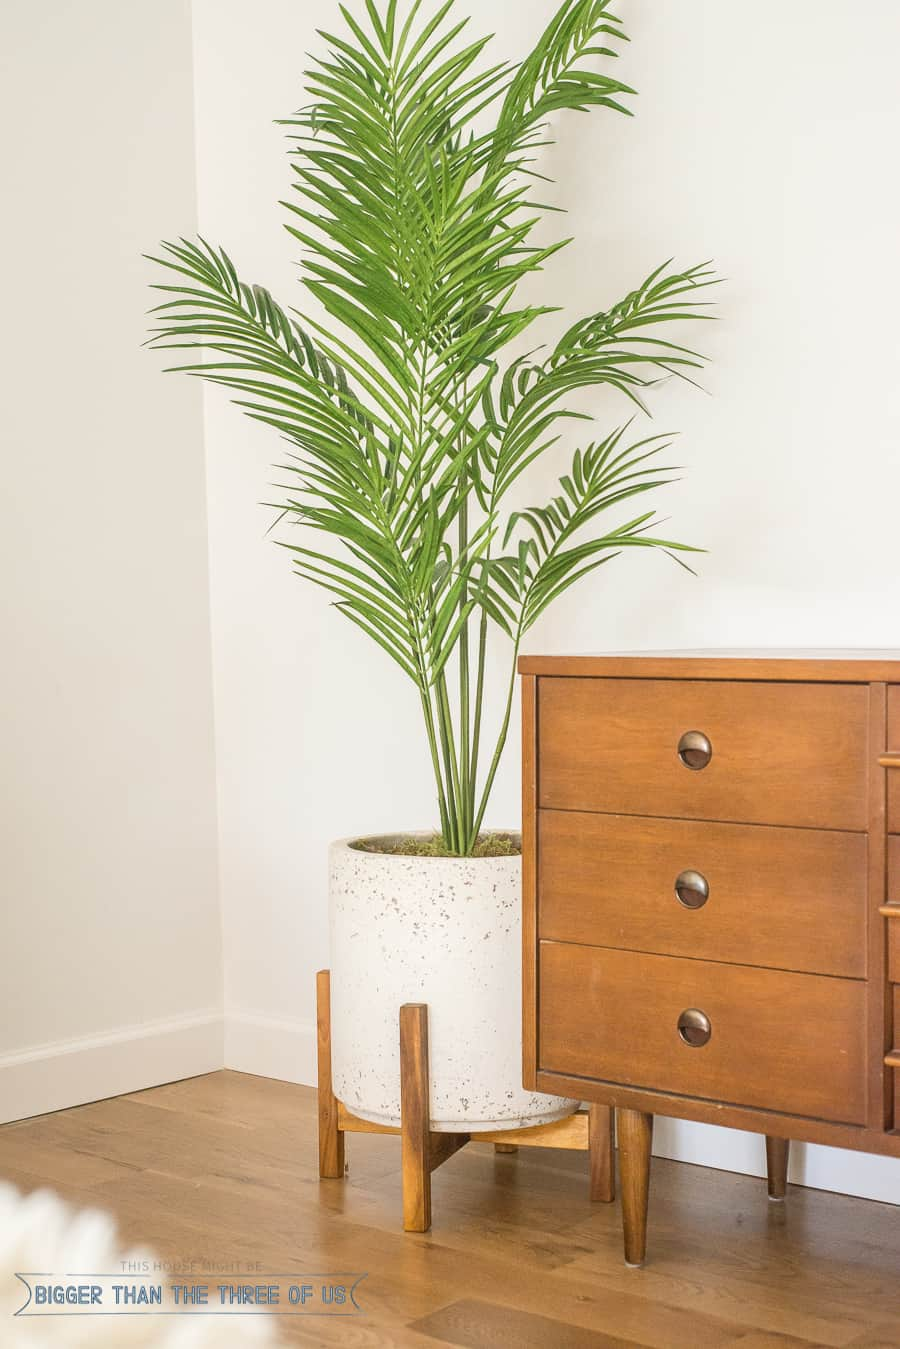 Palm Tree Bedroom Furniture Mid Century Bedroom Reveal Bigger Than The Three Of Us